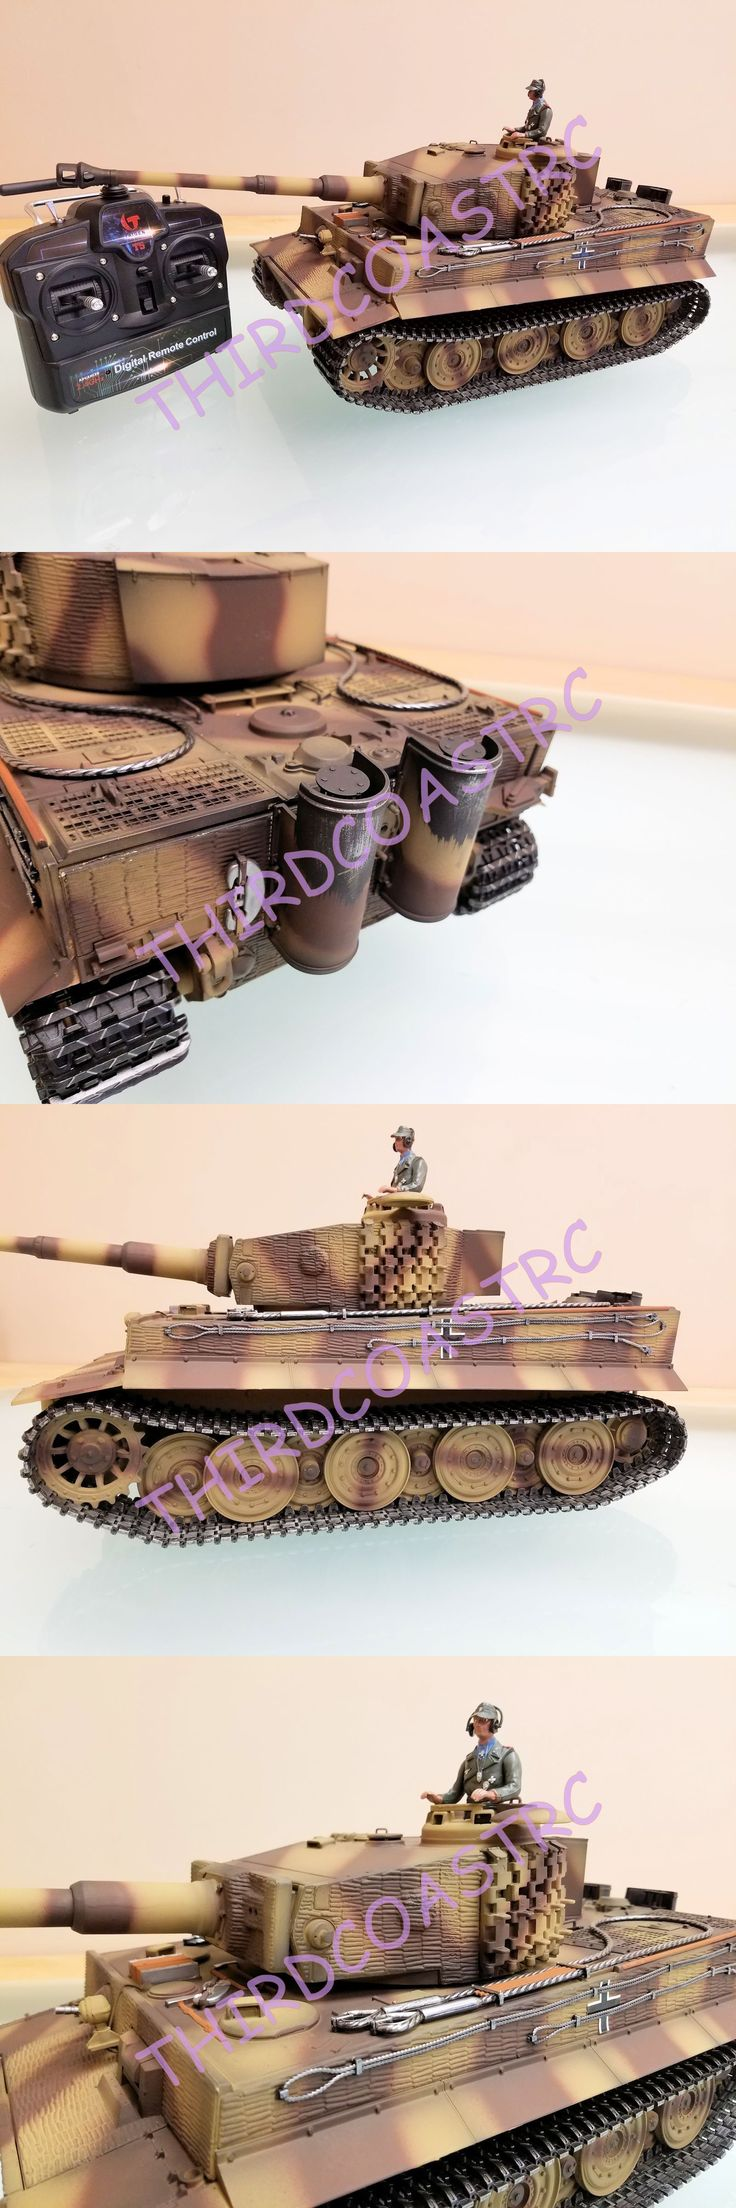 Tanks and Military Vehicles 45986: Imex Taigen 1 16Th Rc Tank Late Tiger 1 Full Metal Airsoft Free Us Ship (Lr48) -> BUY IT NOW ONLY: $449.99 on eBay!